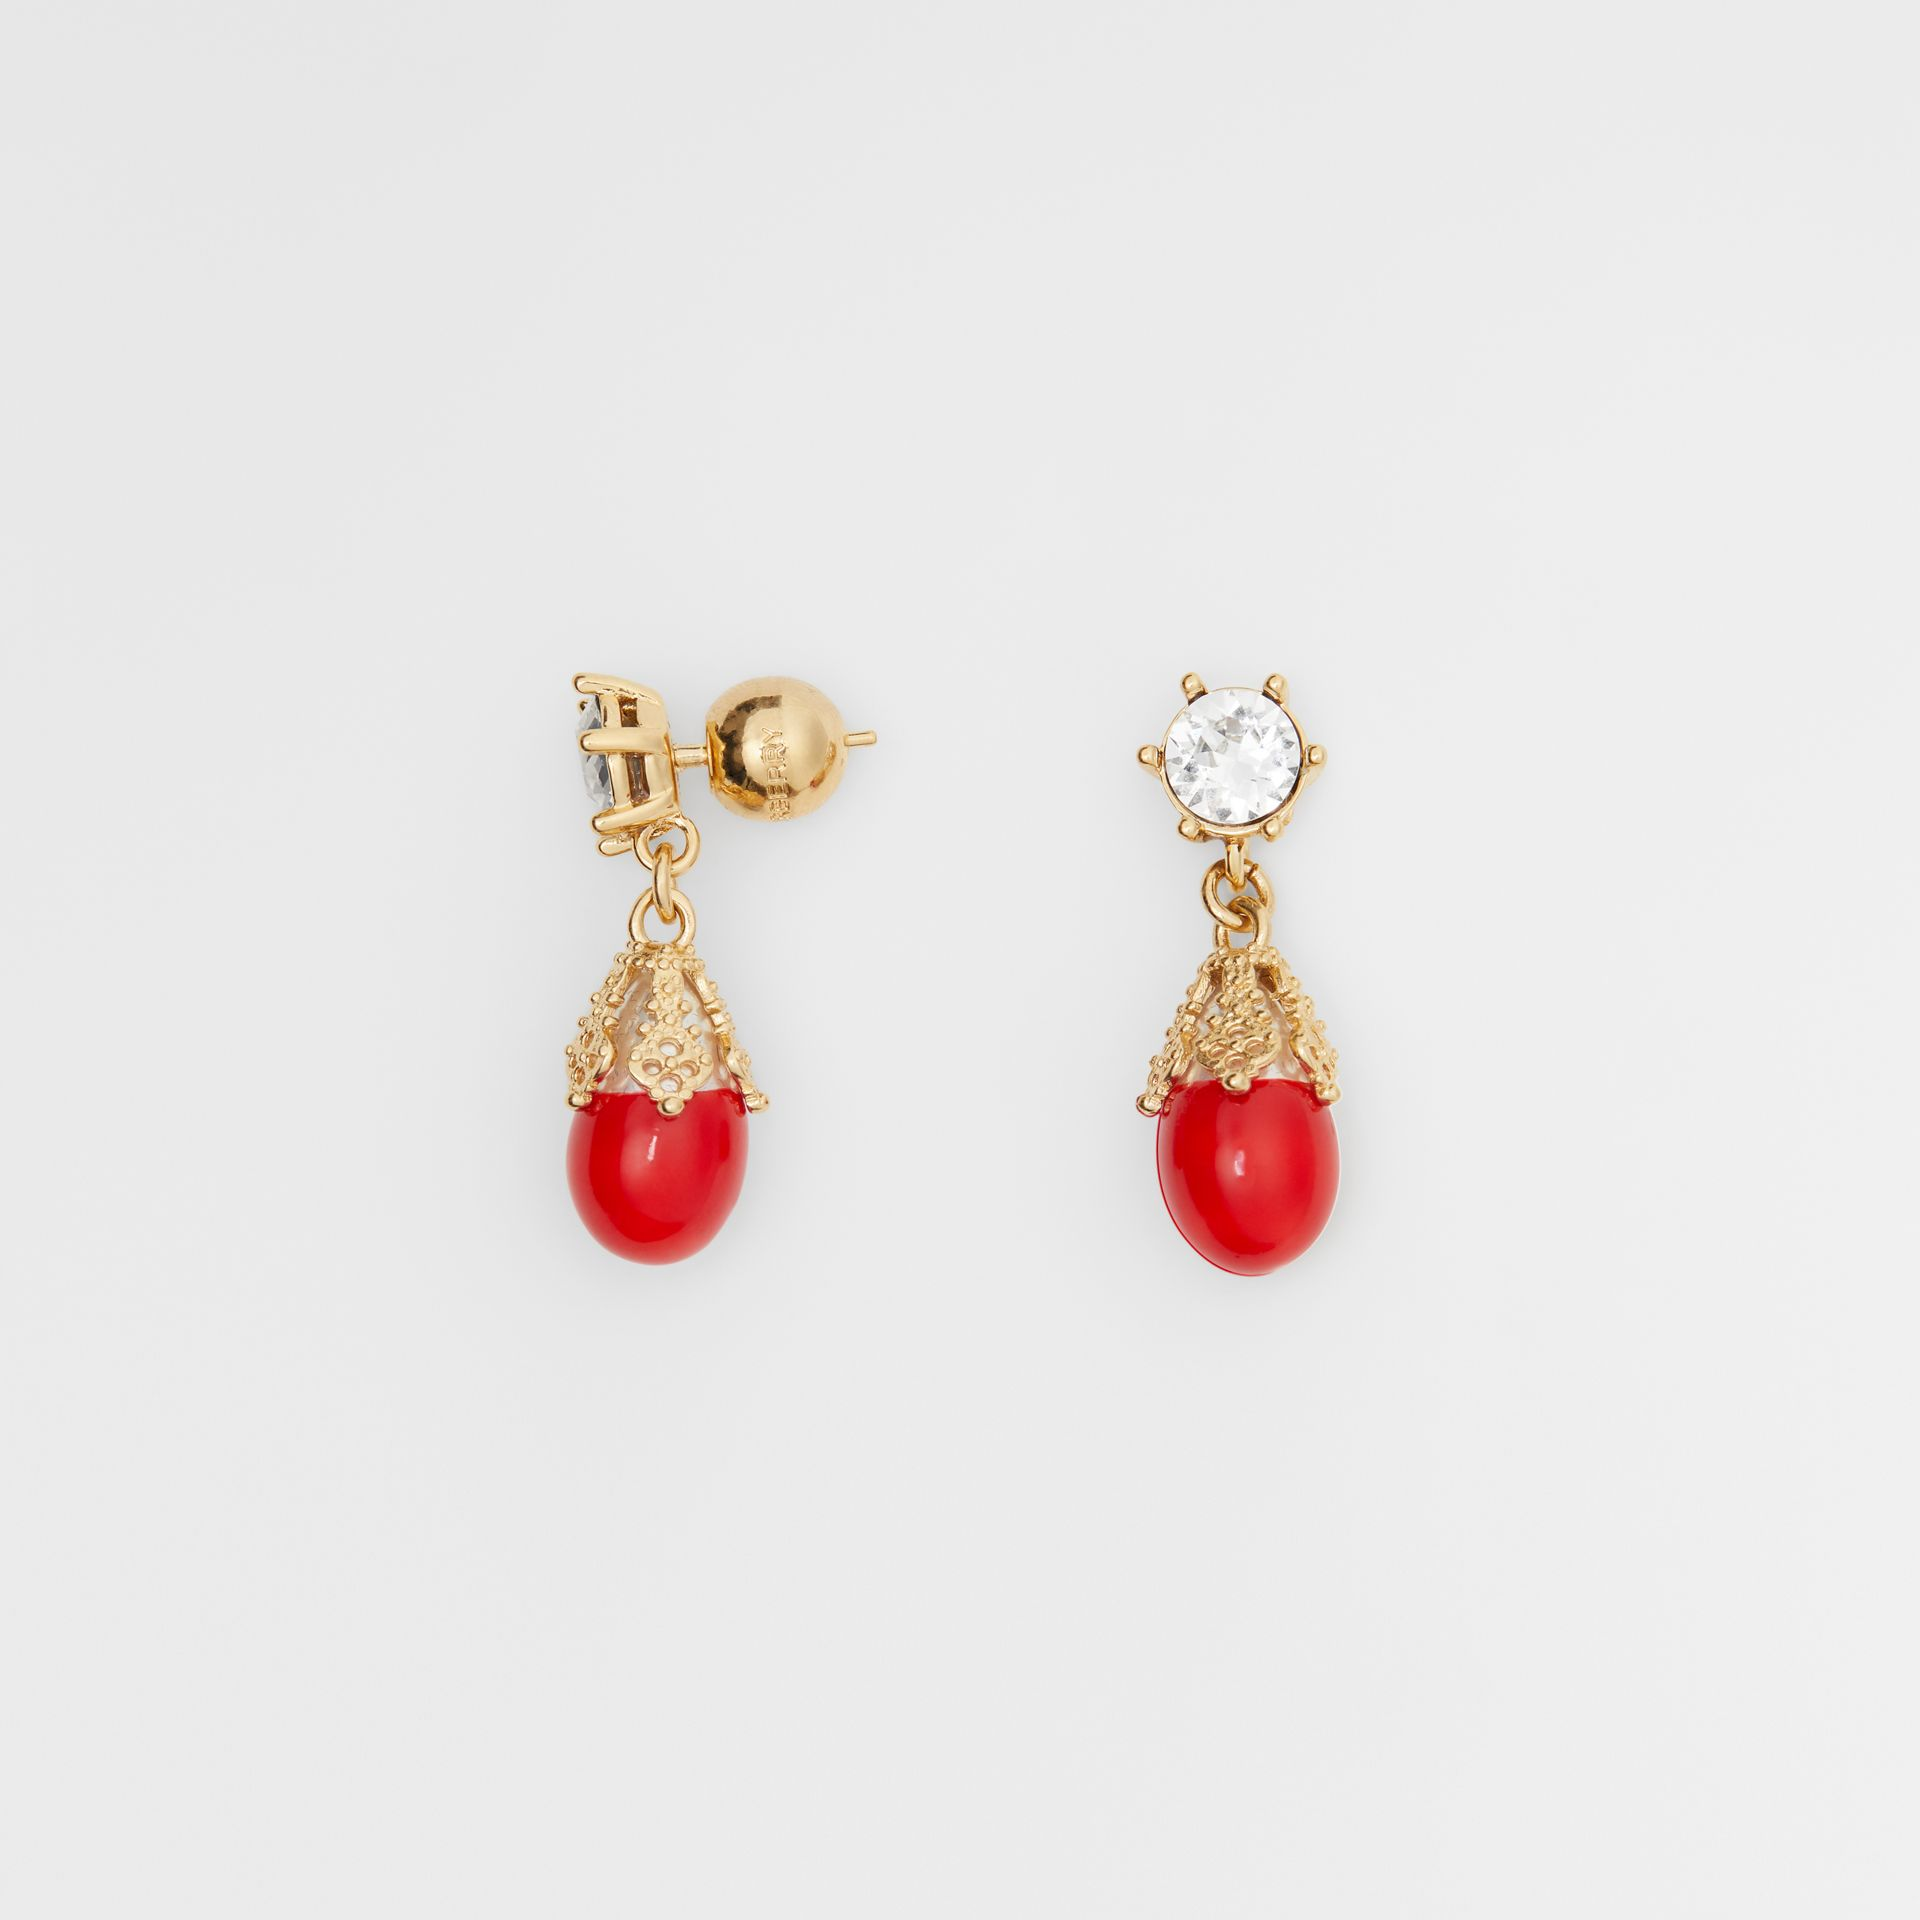 Gold-plated Faux Pearl Charm Earrings in Bright Red/light - Women | Burberry Australia - gallery image 3